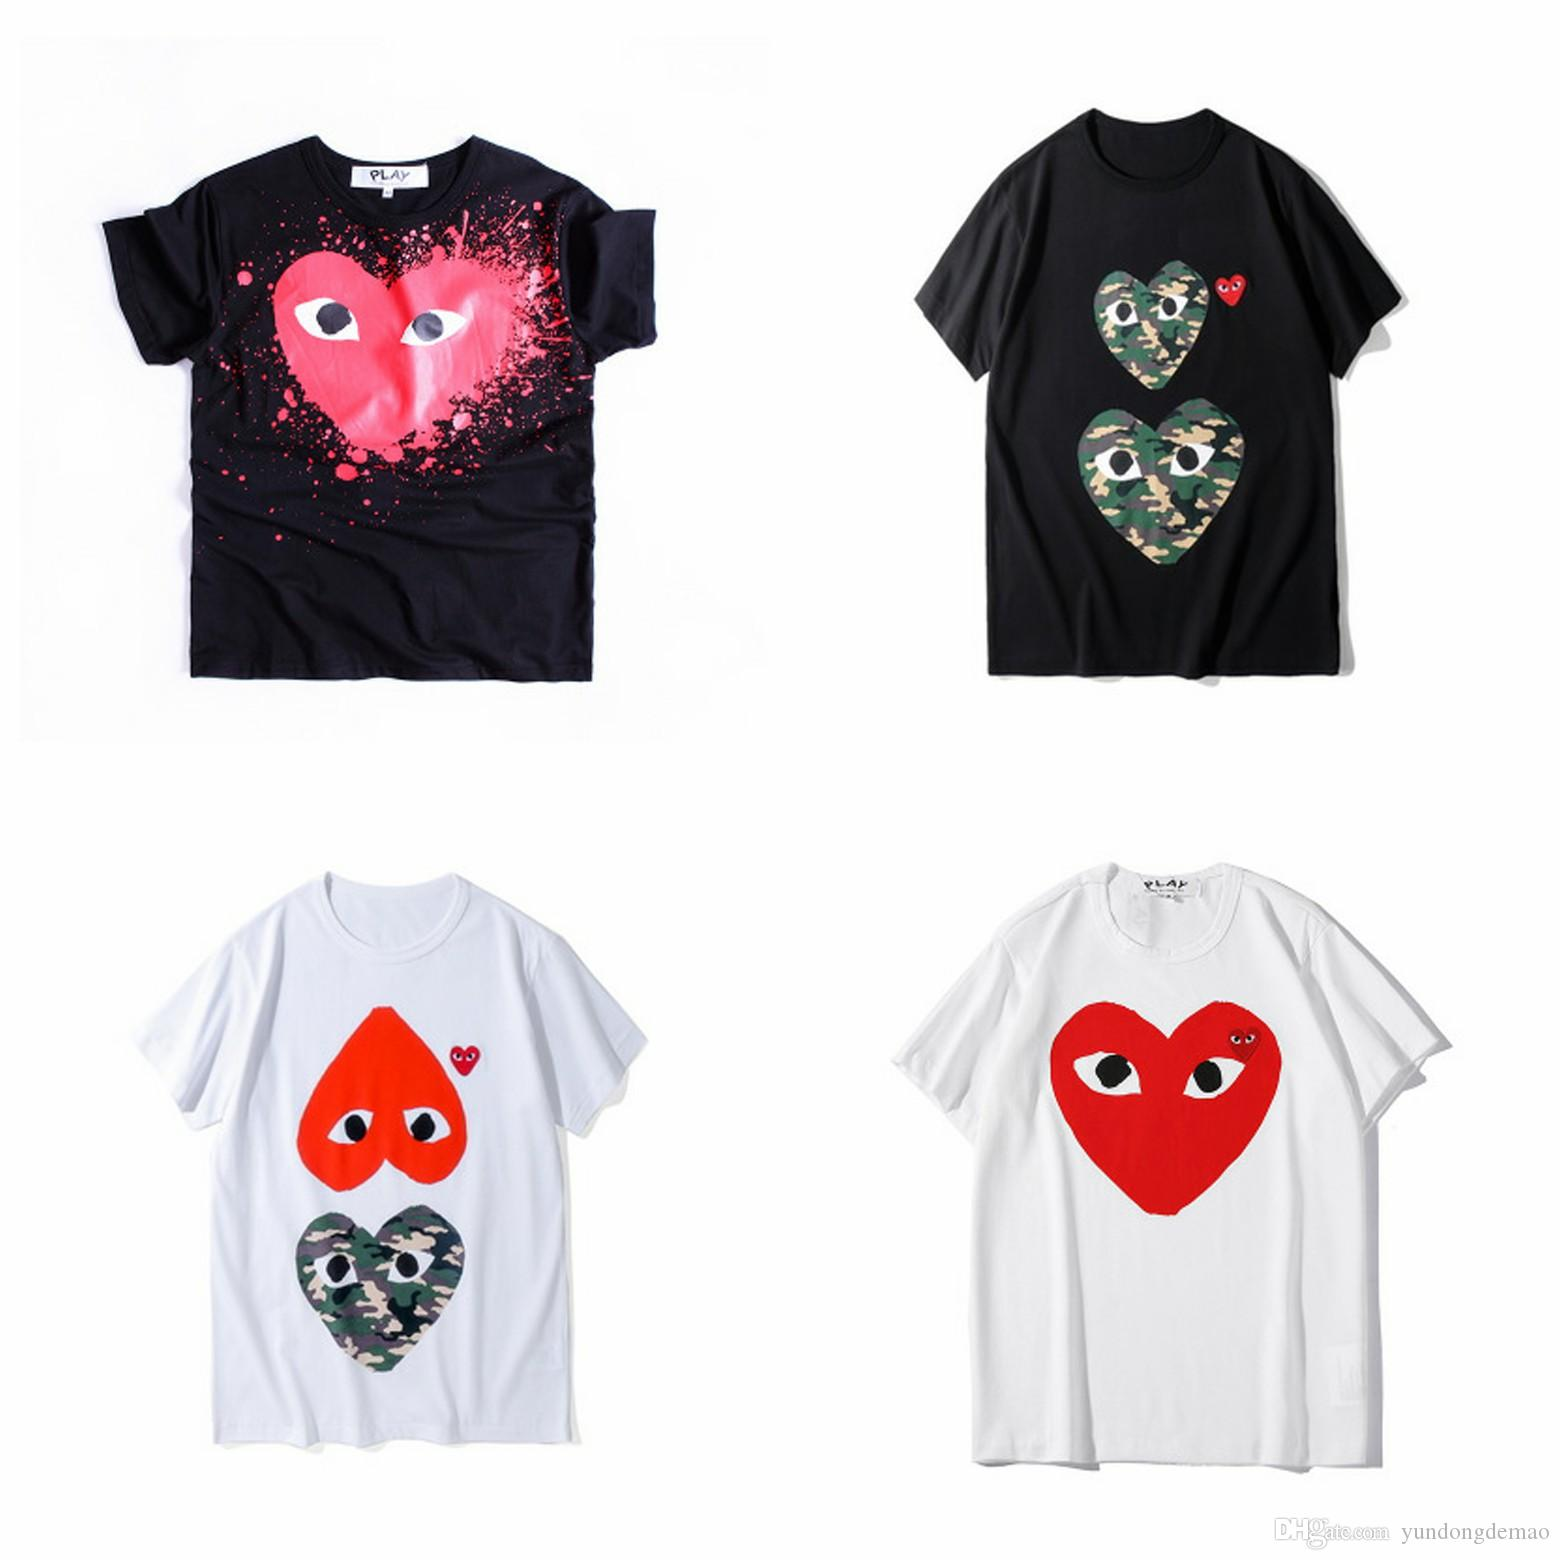 Lover New Arrive COM Best Quality CDG Classic TEE brand new Black Men Play T-shirt White Short Sleeve Tops M Size Men's Japan Brand